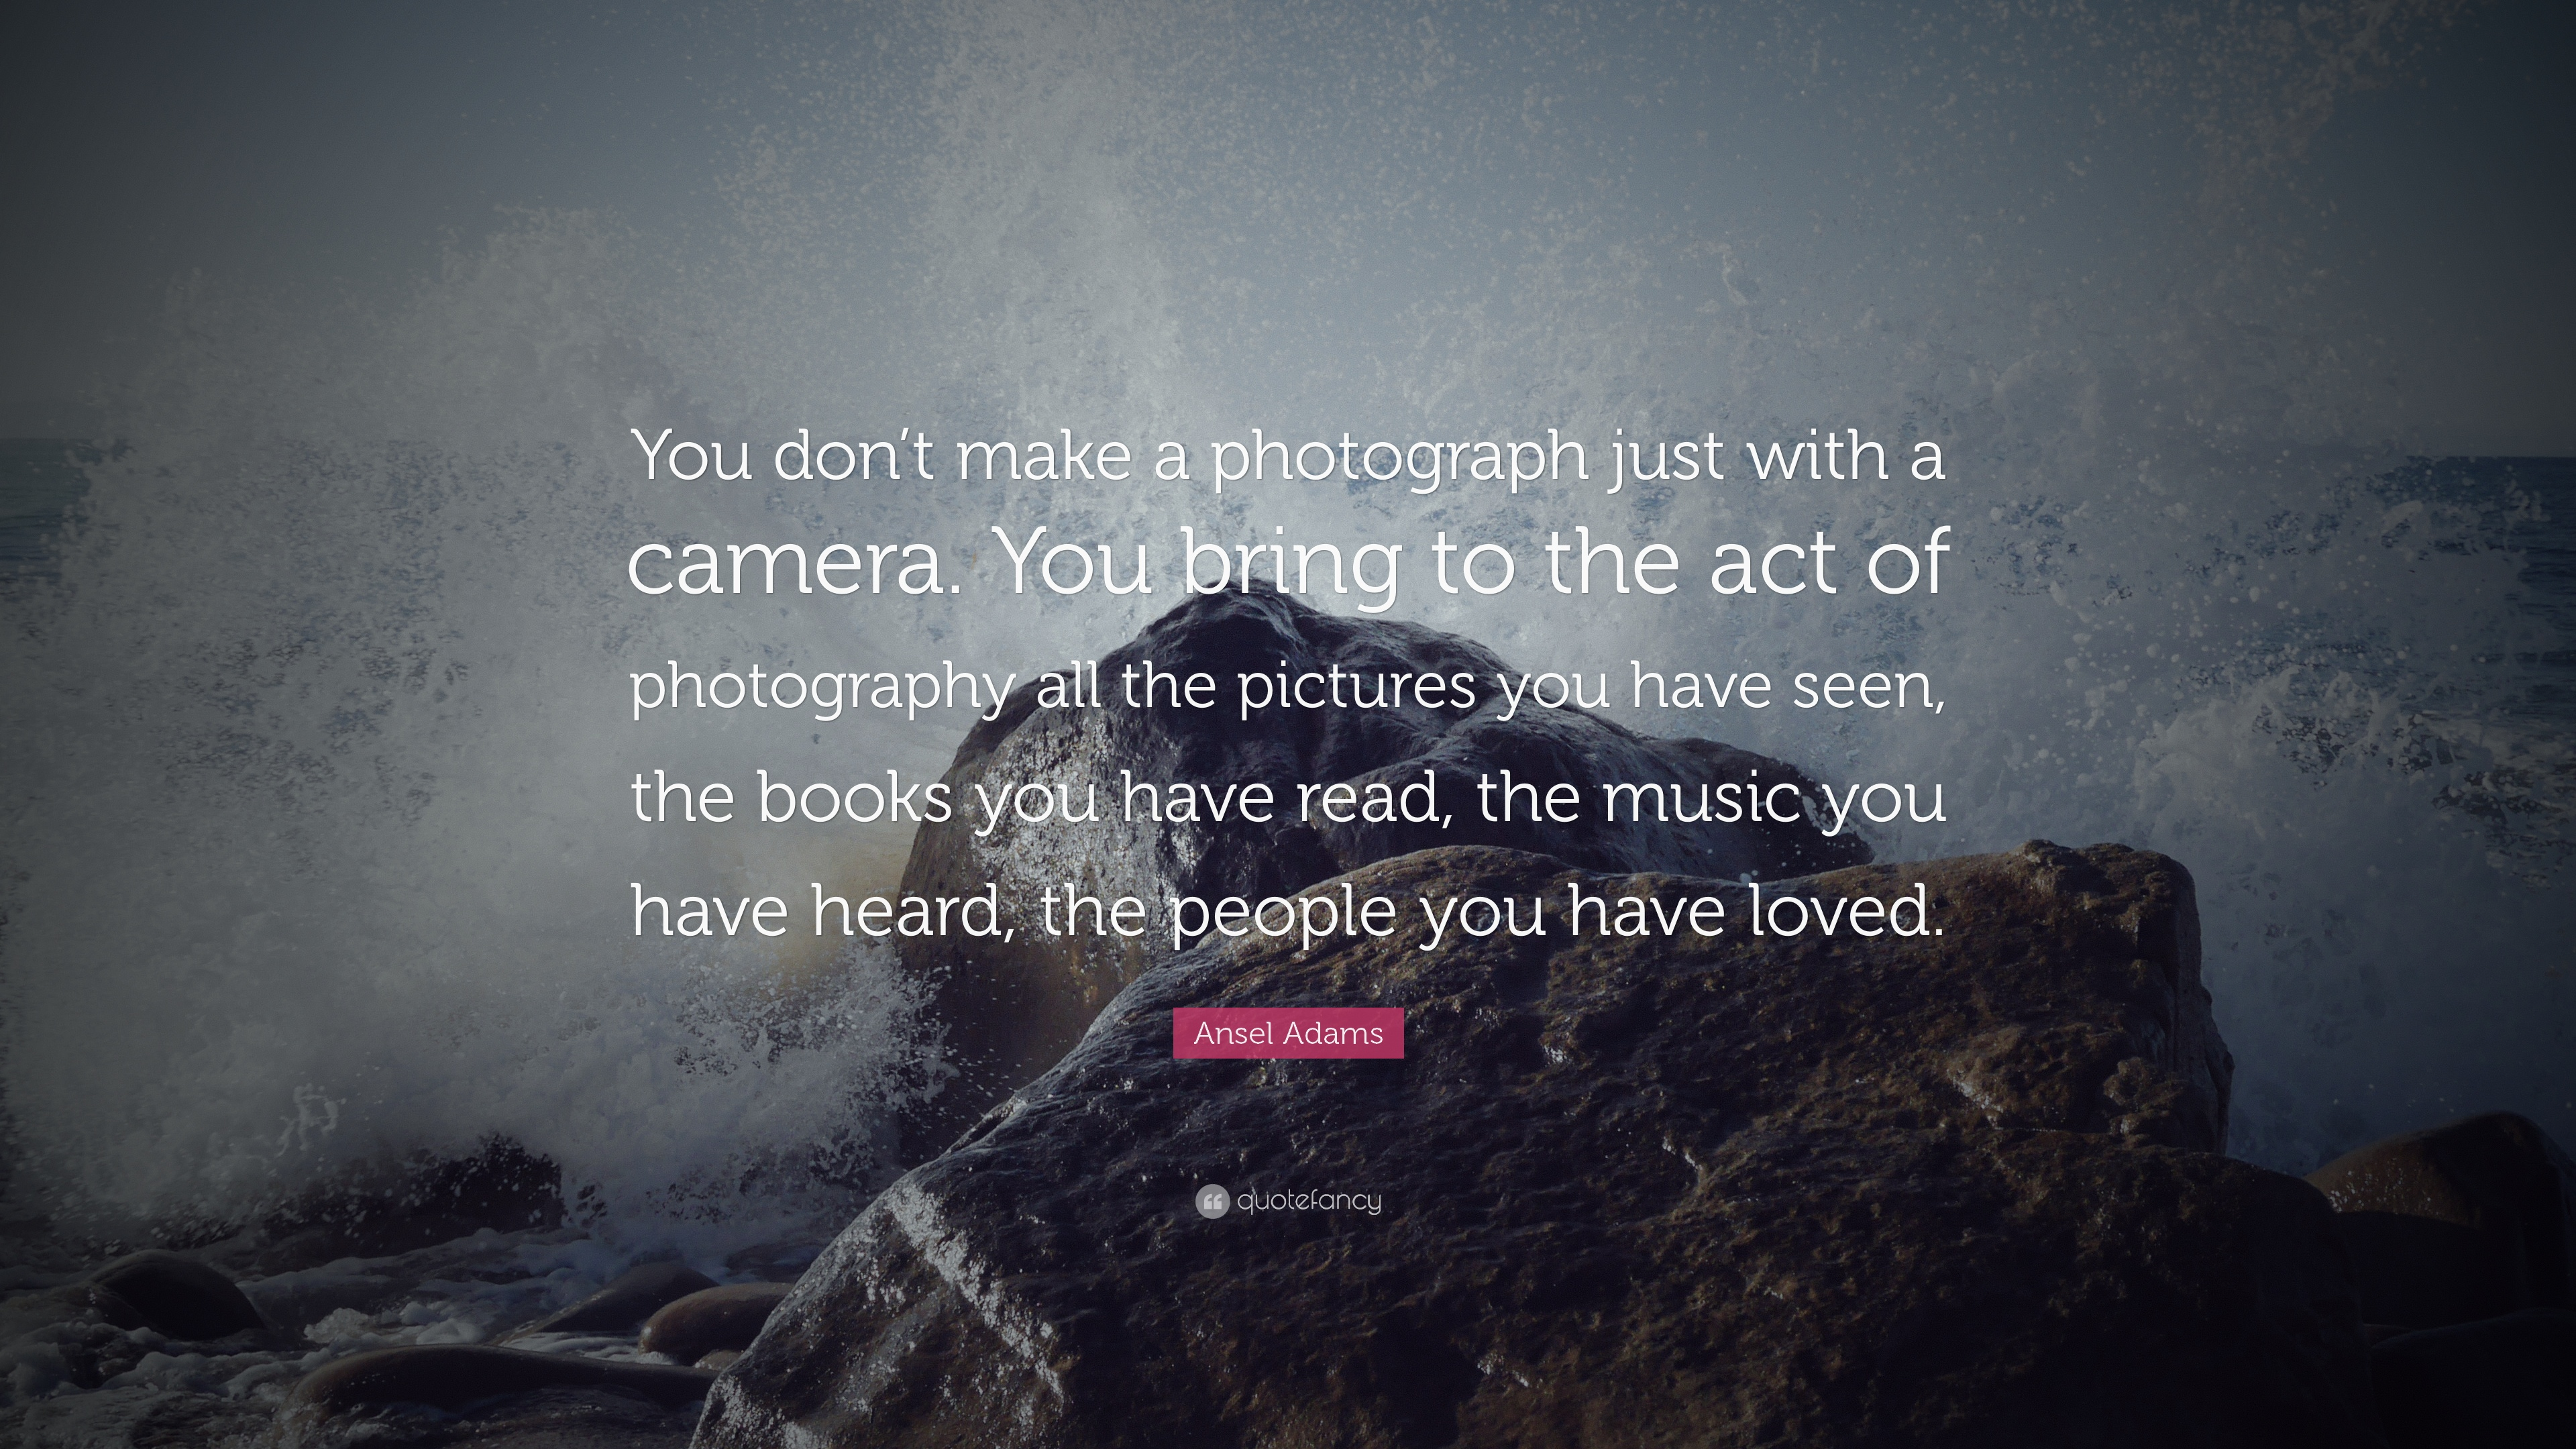 Ansel Adams Quotes | Ansel Adams Quote You Don T Make A Photograph Just With A Camera